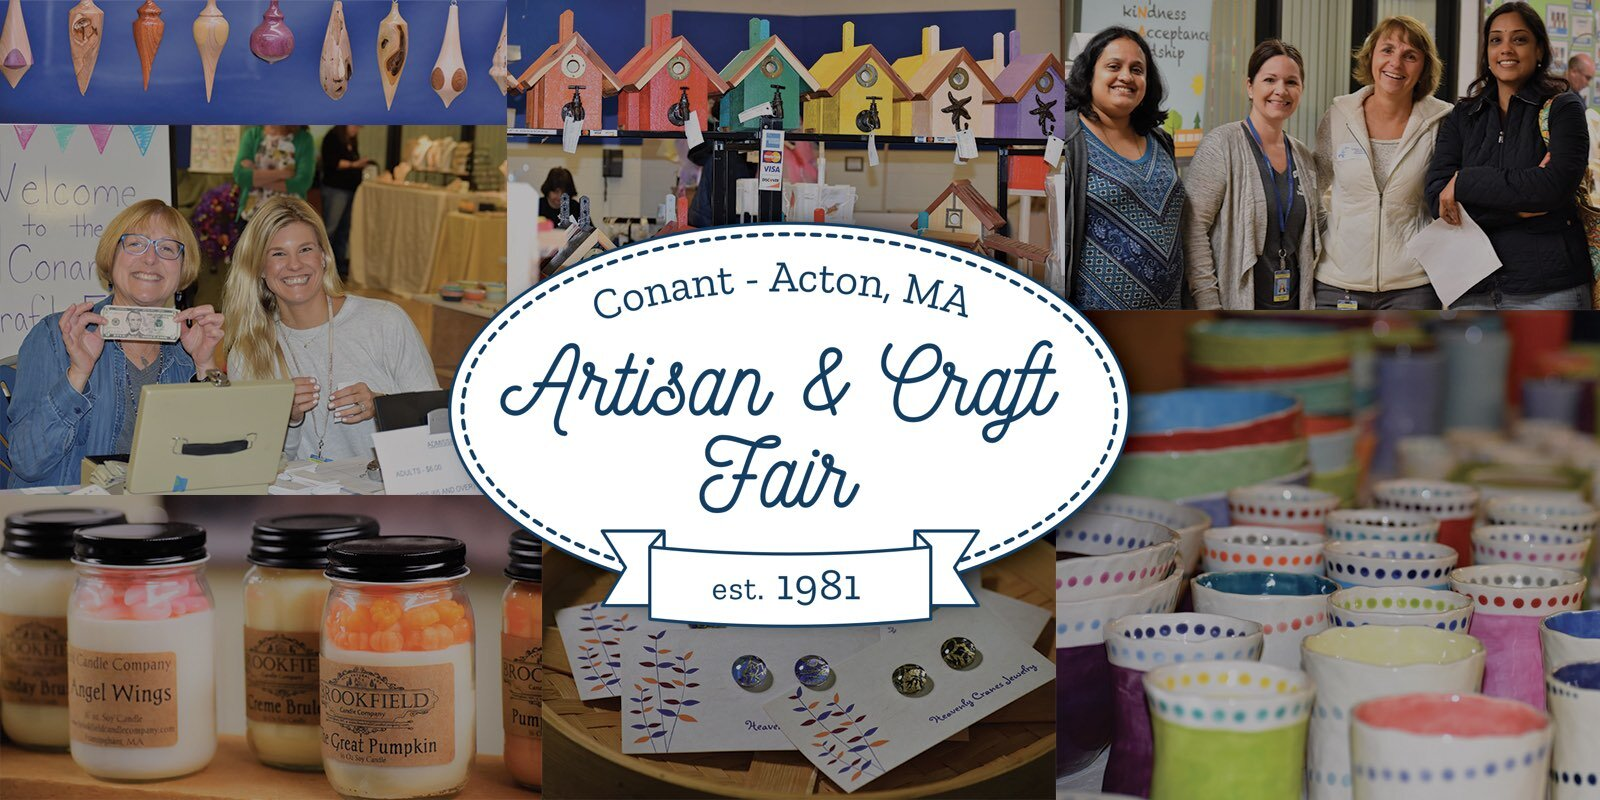 The Conant Artisan & Craft Fair is a not-for-profit event which generates funds to enrich the academic experiences of Conant Elementary School students in Acton, MA. All proceeds generated by the fair supports us our students and the school community. By attending or exhibiting, you are providing funds to support the school community with: Teacher Assistants, Cultural Enrichment Activities, Author Visits, Community-building Events, and more!